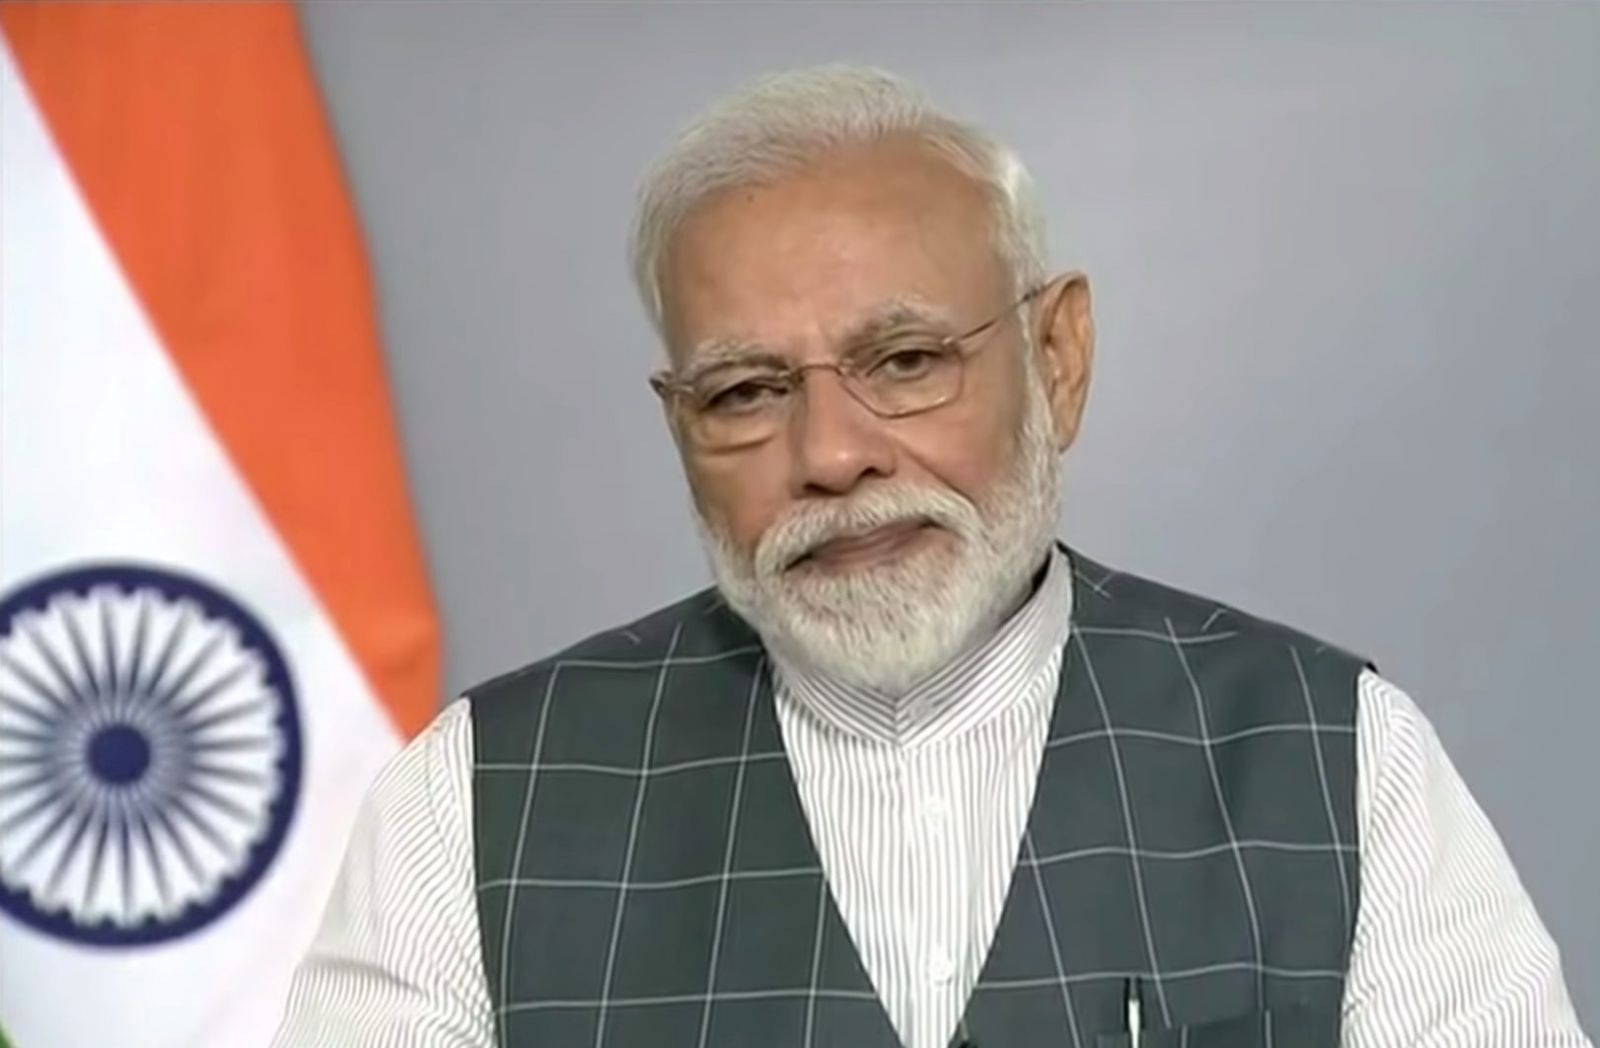 India's prime minister, Narendra Modi, addresses his country regarding the anti-satellite missile test. Photo Credit: Office of the Prime Minister of India